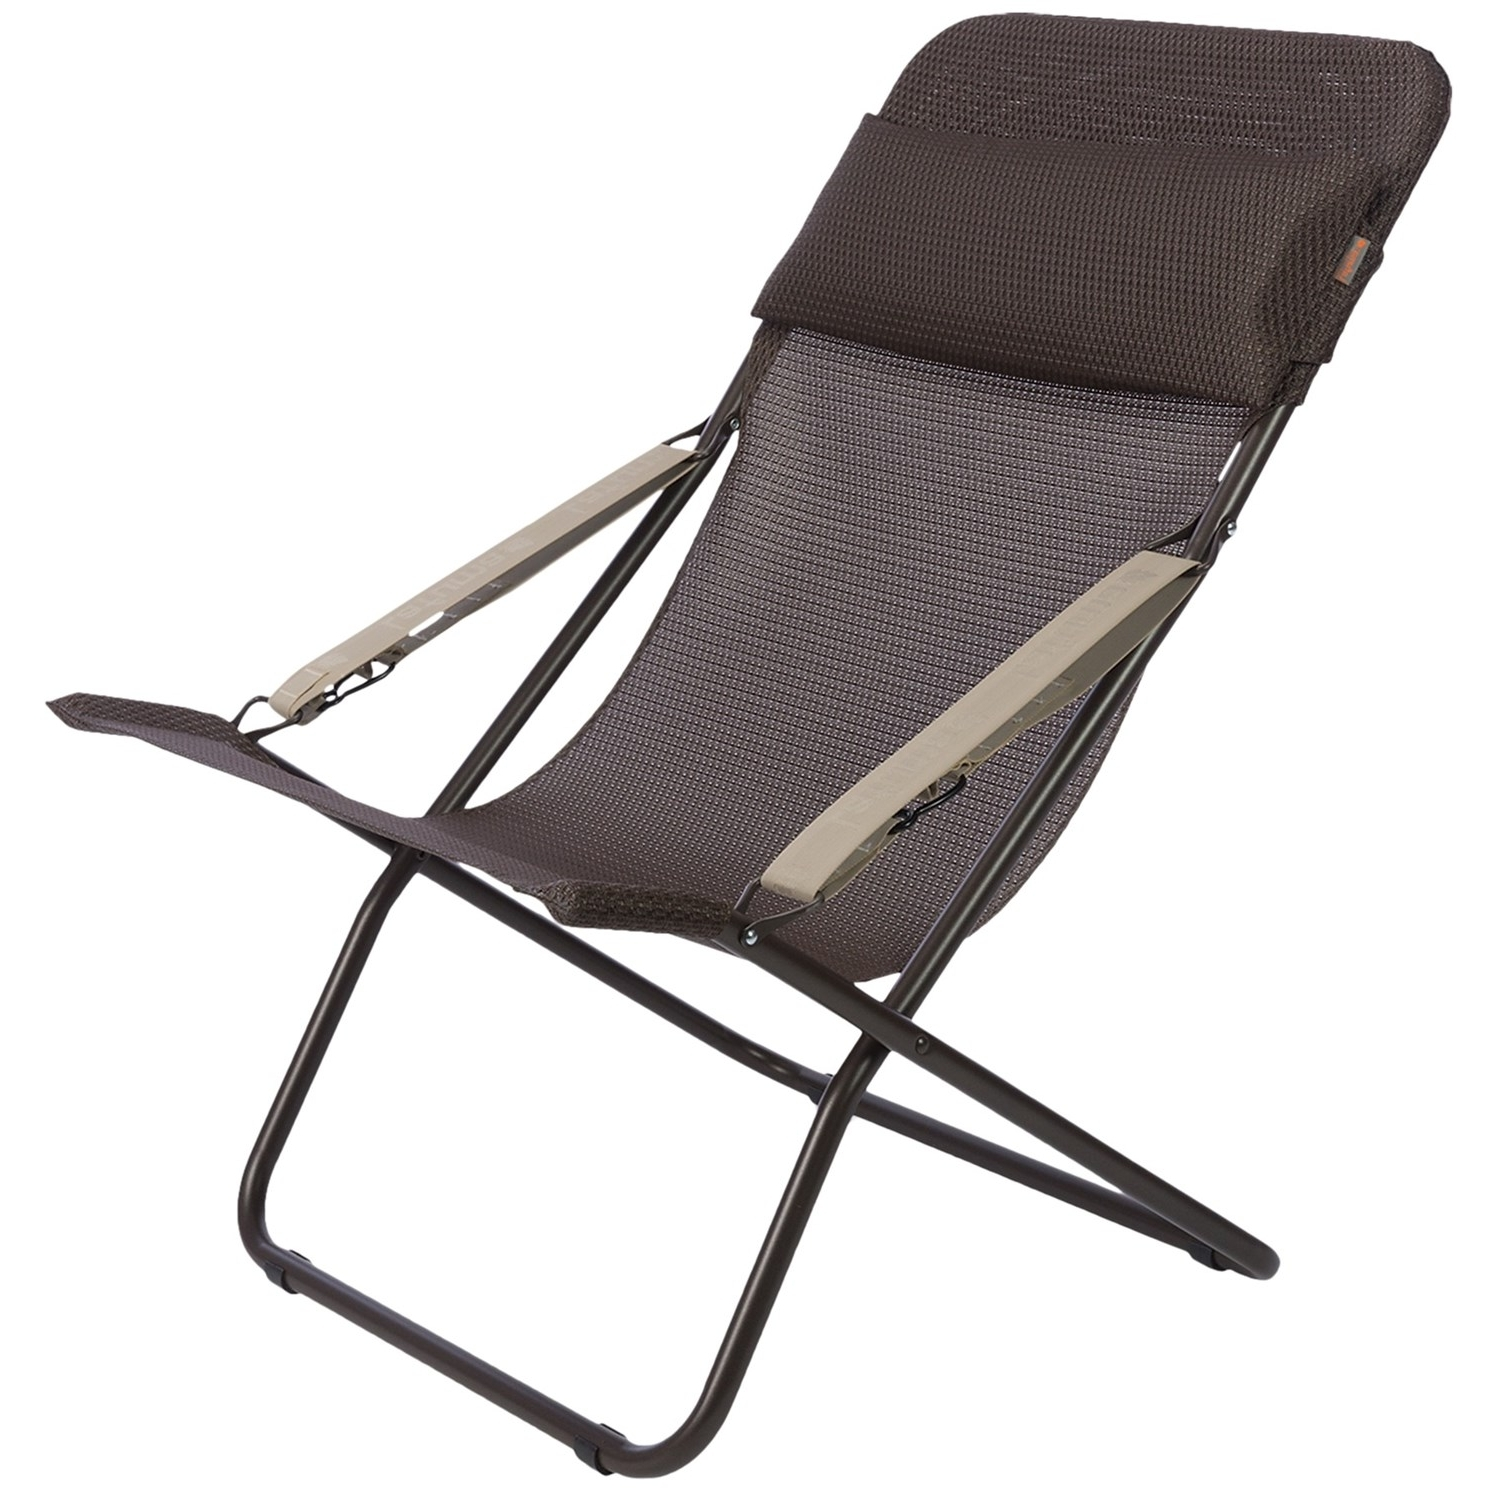 Most Recently Released Chaise Lounge Folding Chairs Throughout Lounge Chair : Folding Lawn Chairs Sturdy Outdoor Chaise Lounge (Gallery 9 of 15)